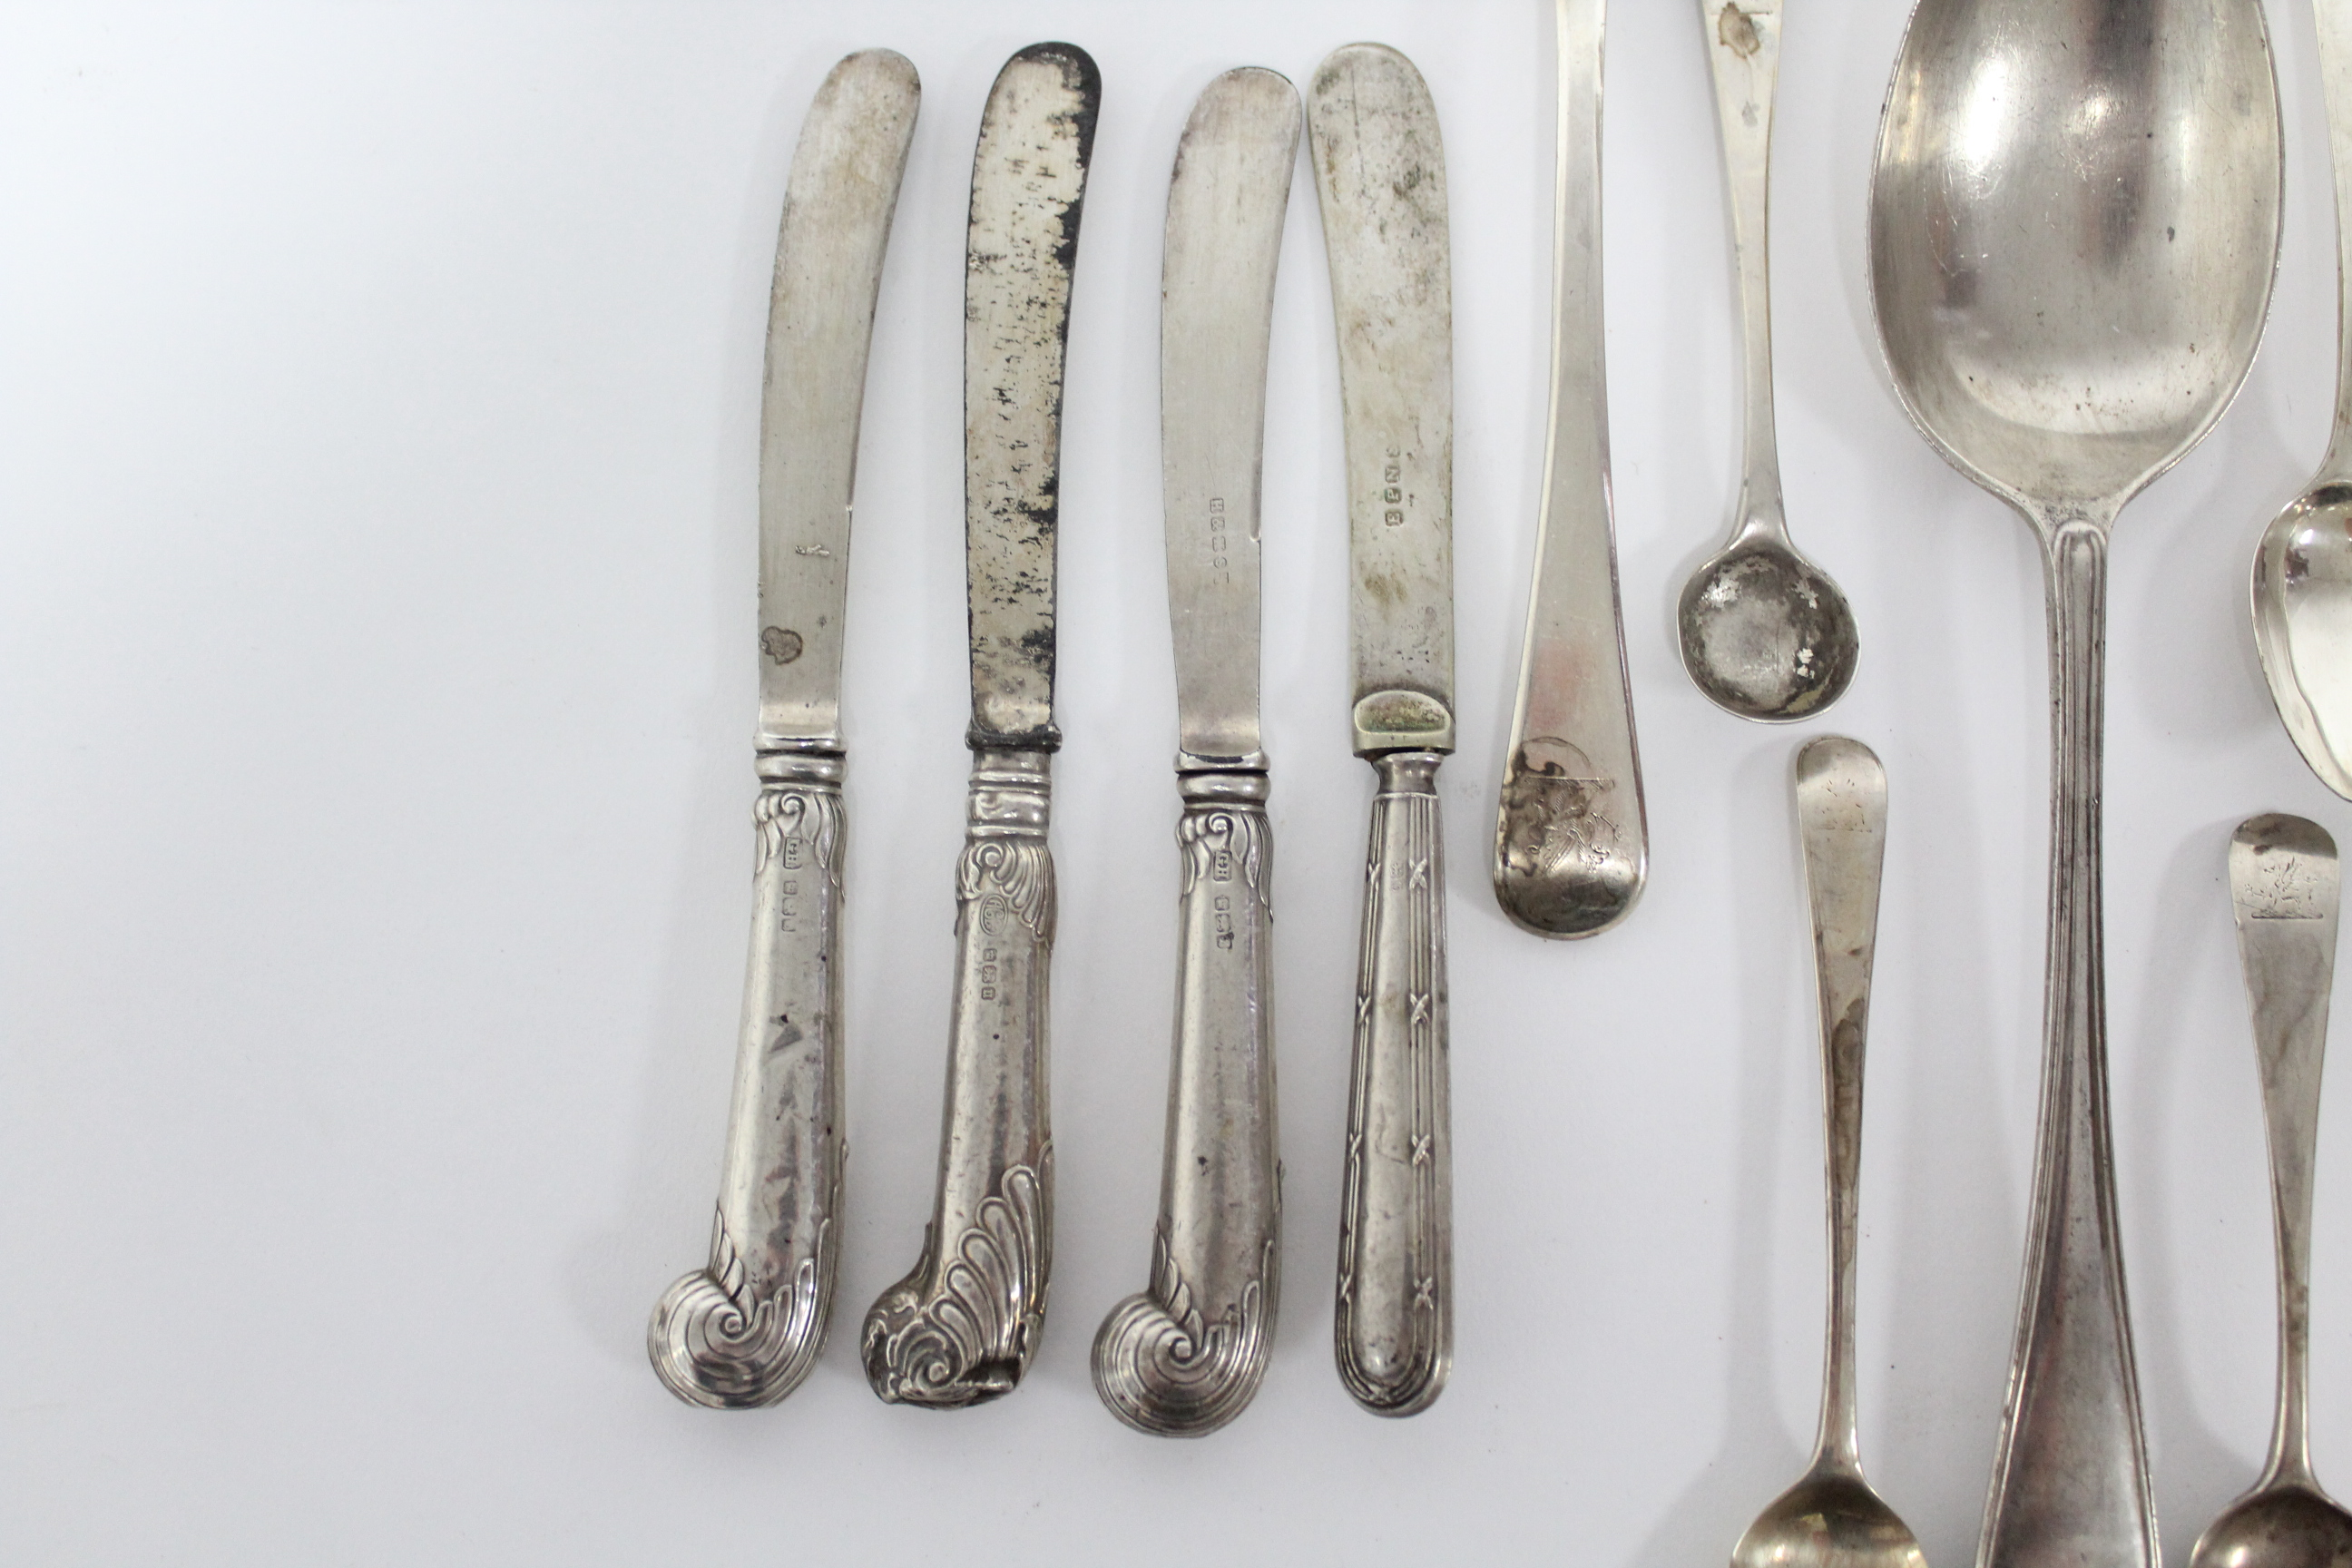 Lot 18 - A pair of Old English sauce ladles, with oval bowls, London 1811, by Eley, Fearn, & Chawner; an